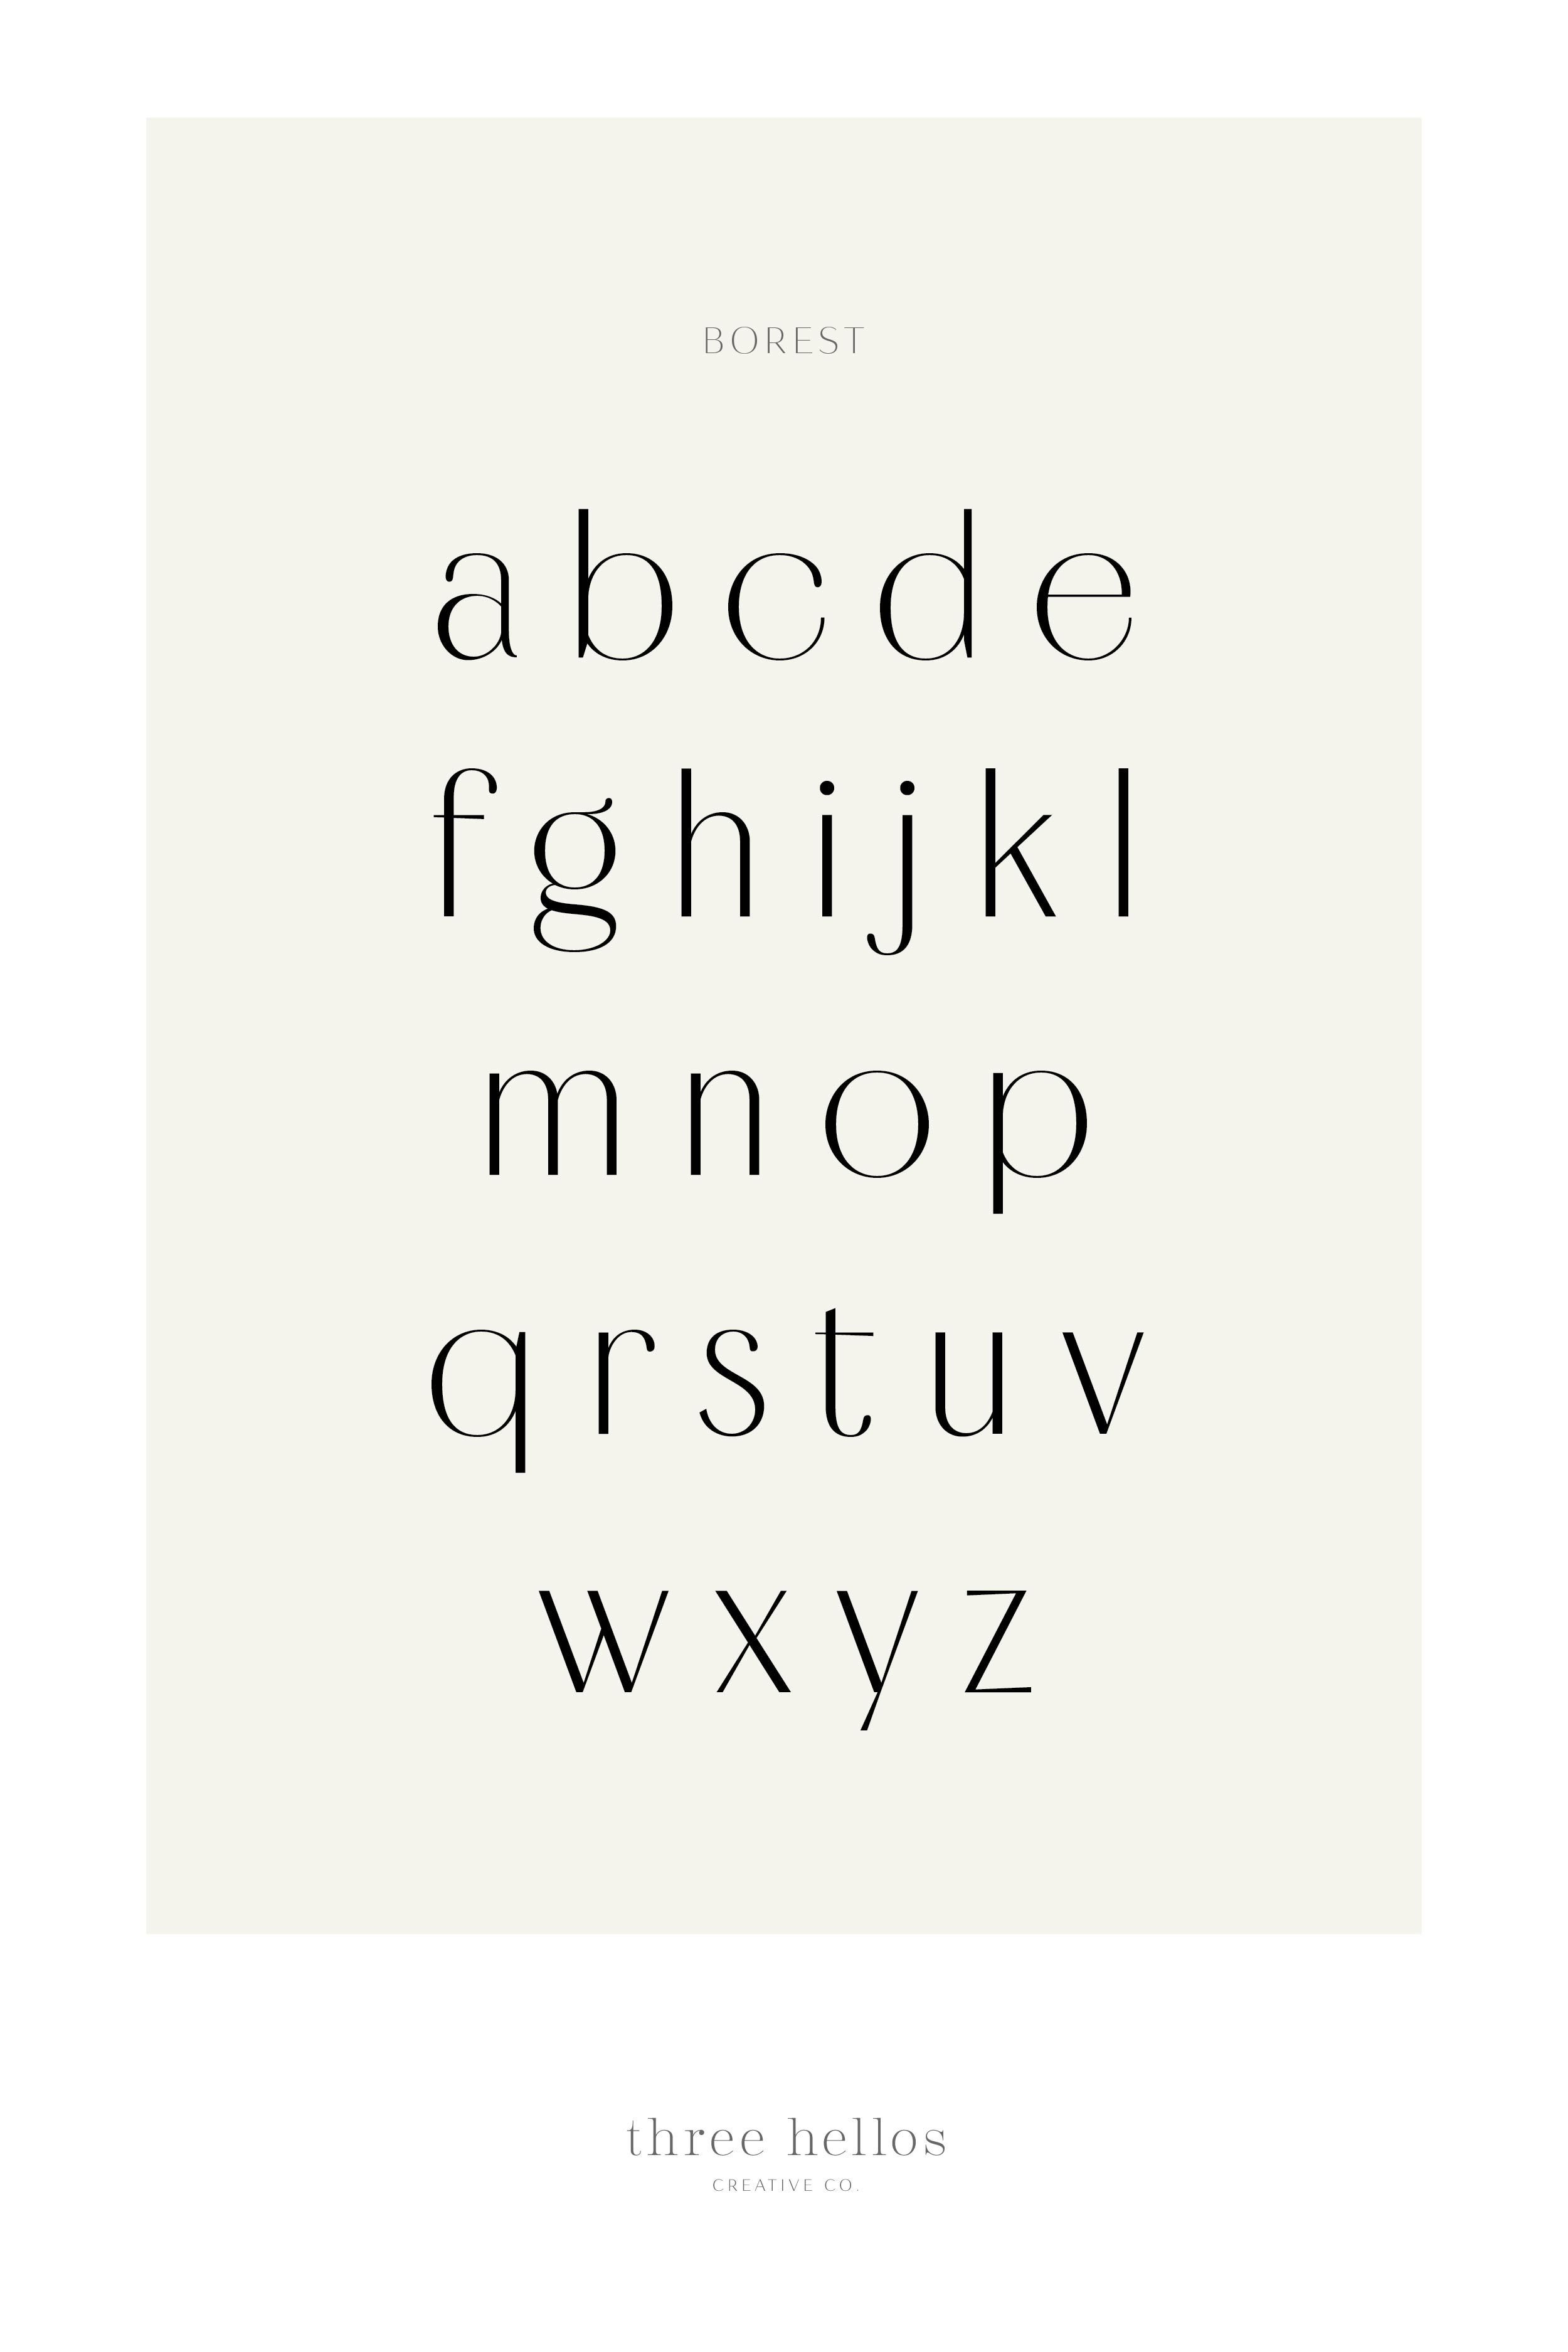 The Best Sans Serif Fonts For Branding Three Hellos Artisan Branding Web Design Stationery For Passionate Creatives And Small Businesses In 2020 Best Sans Serif Fonts Sans Serif Fonts Serif Fonts